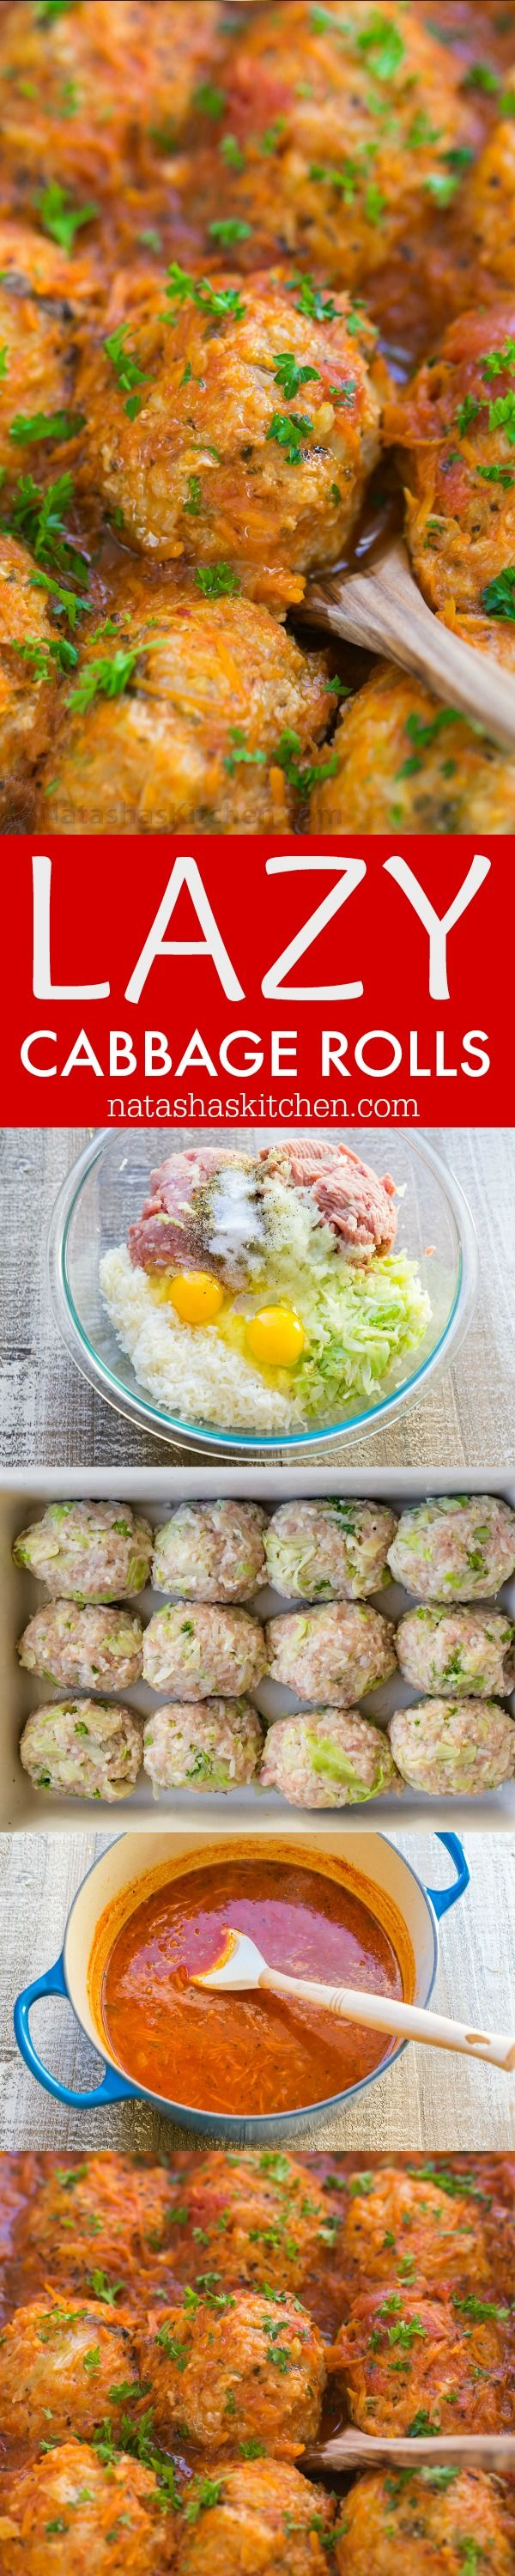 This lazy cabbage rolls recipe gives you the same great flavors of stuffed cabbage with much less effort. Lazy cabbage rolls are so juicy and comforting   natashaskitchen.com